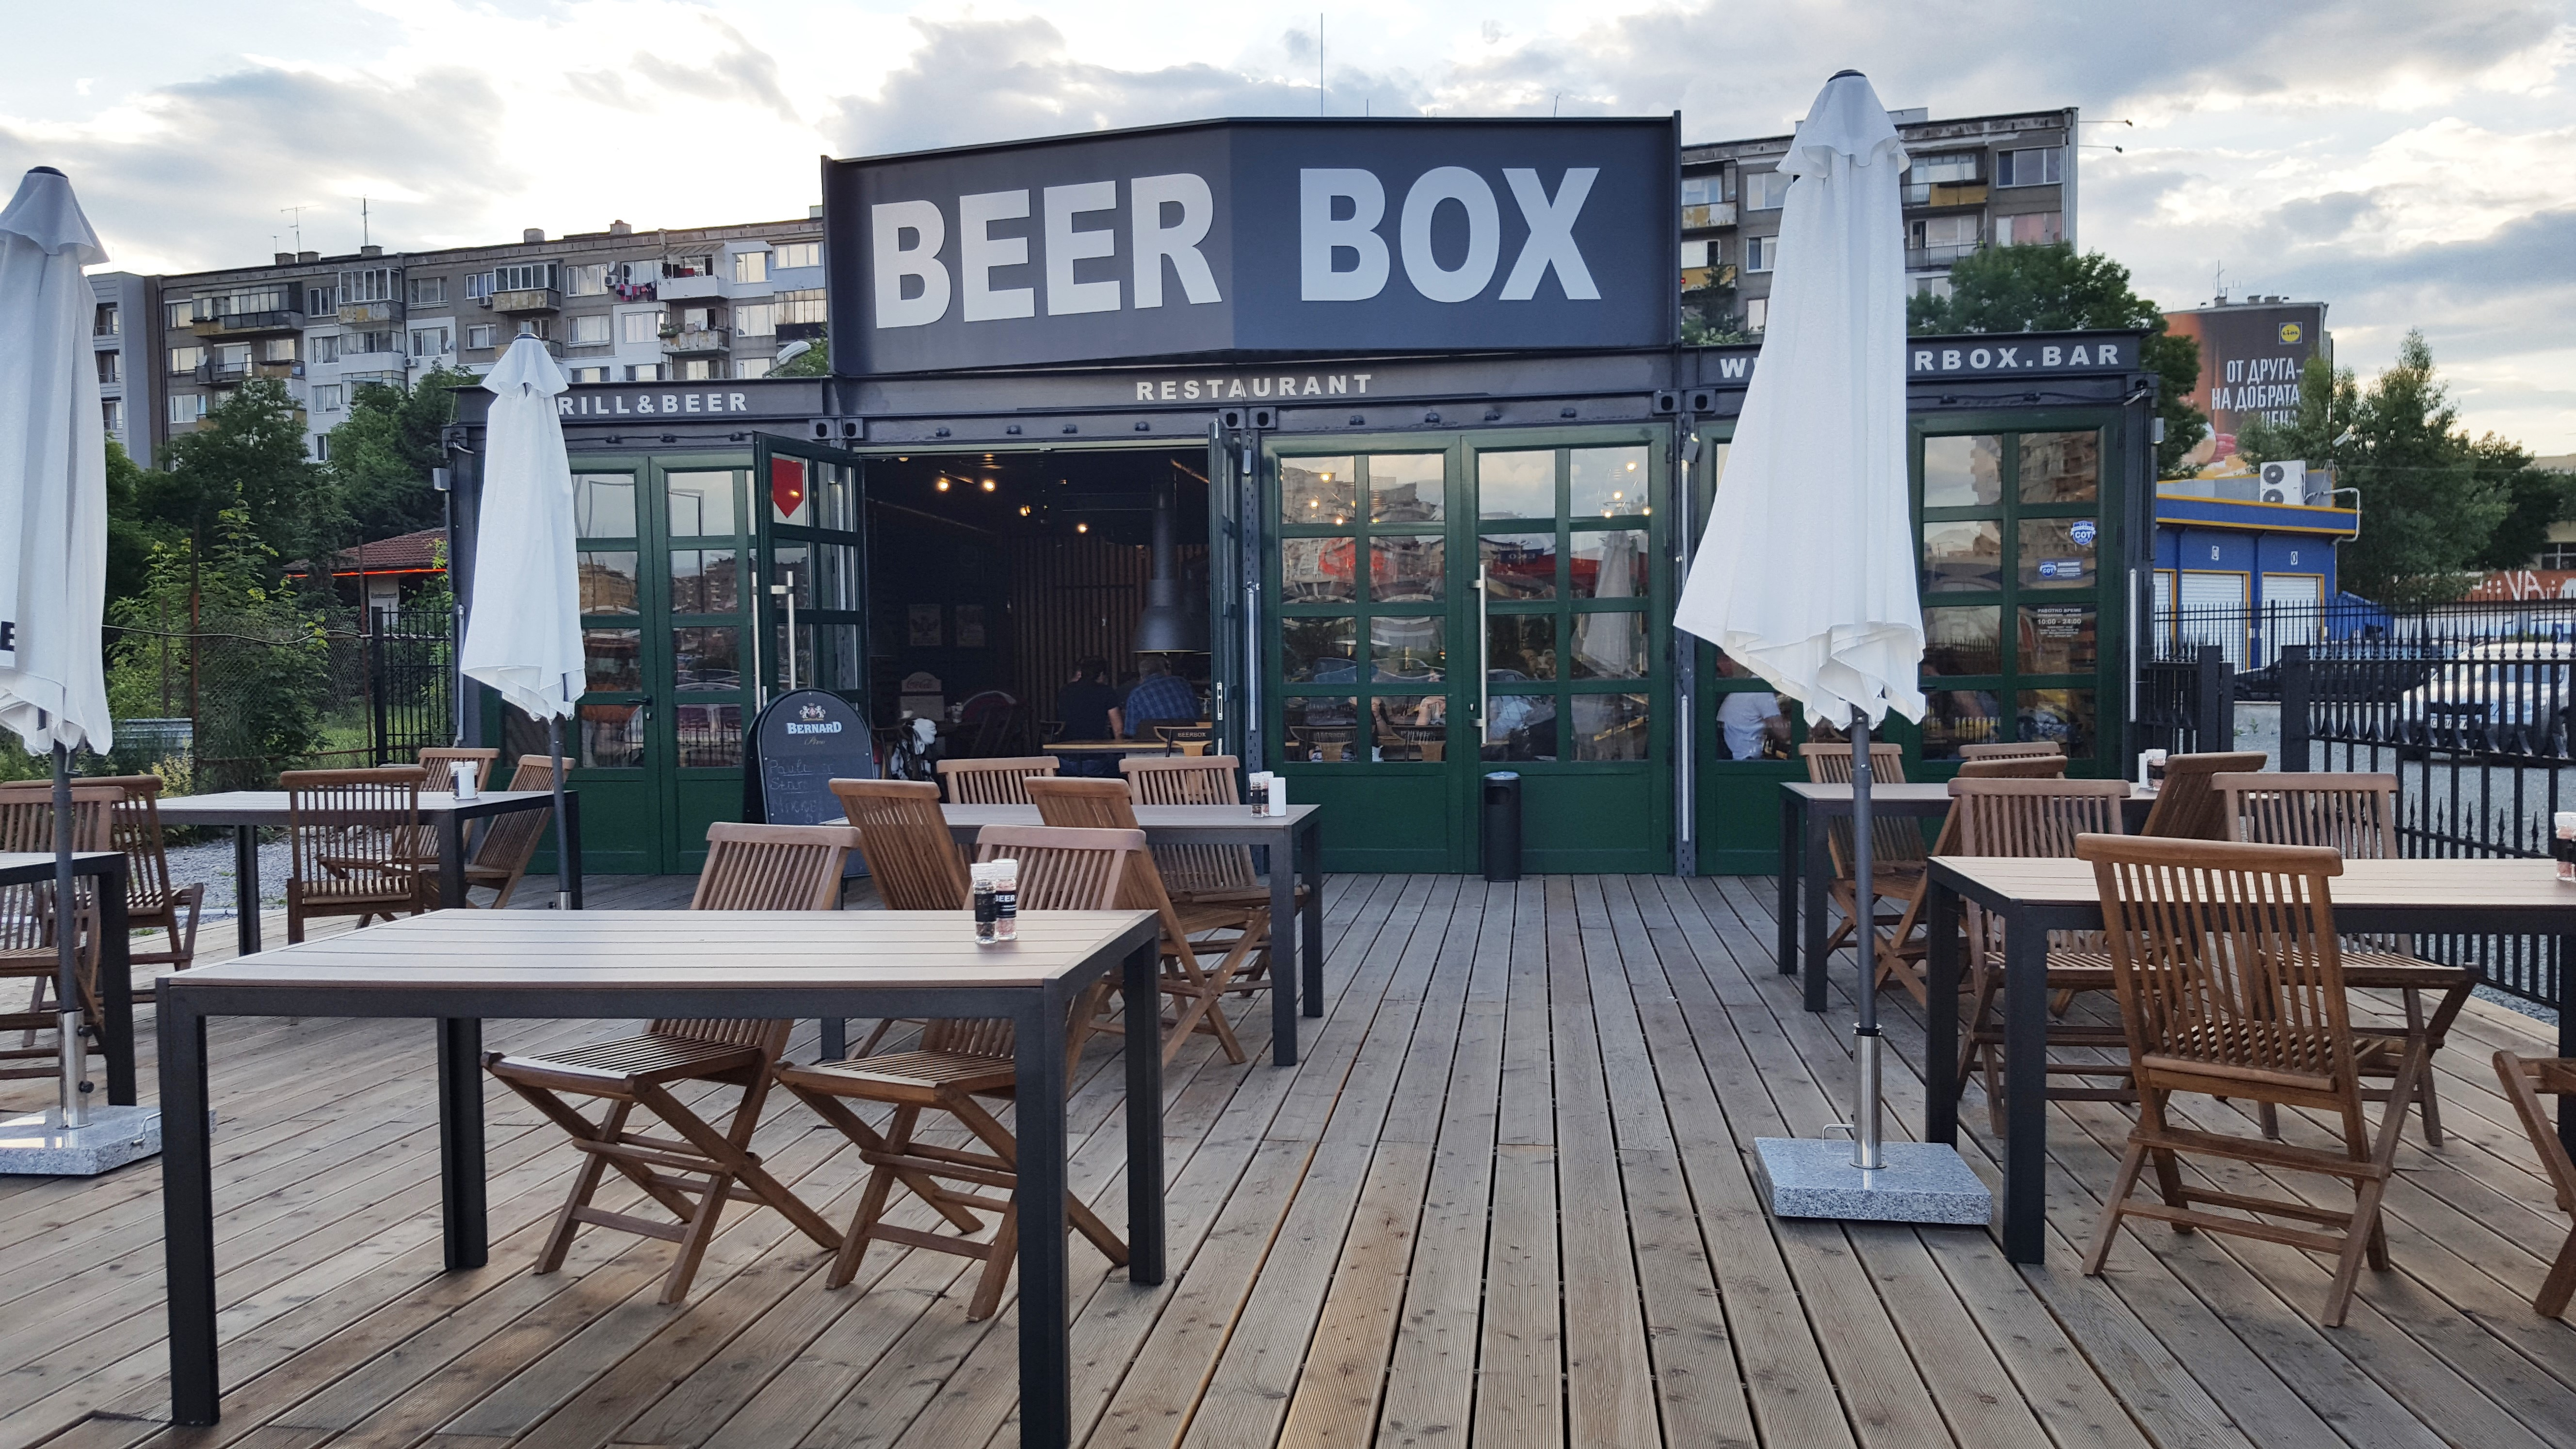 Beer Box Outside, placescases.com